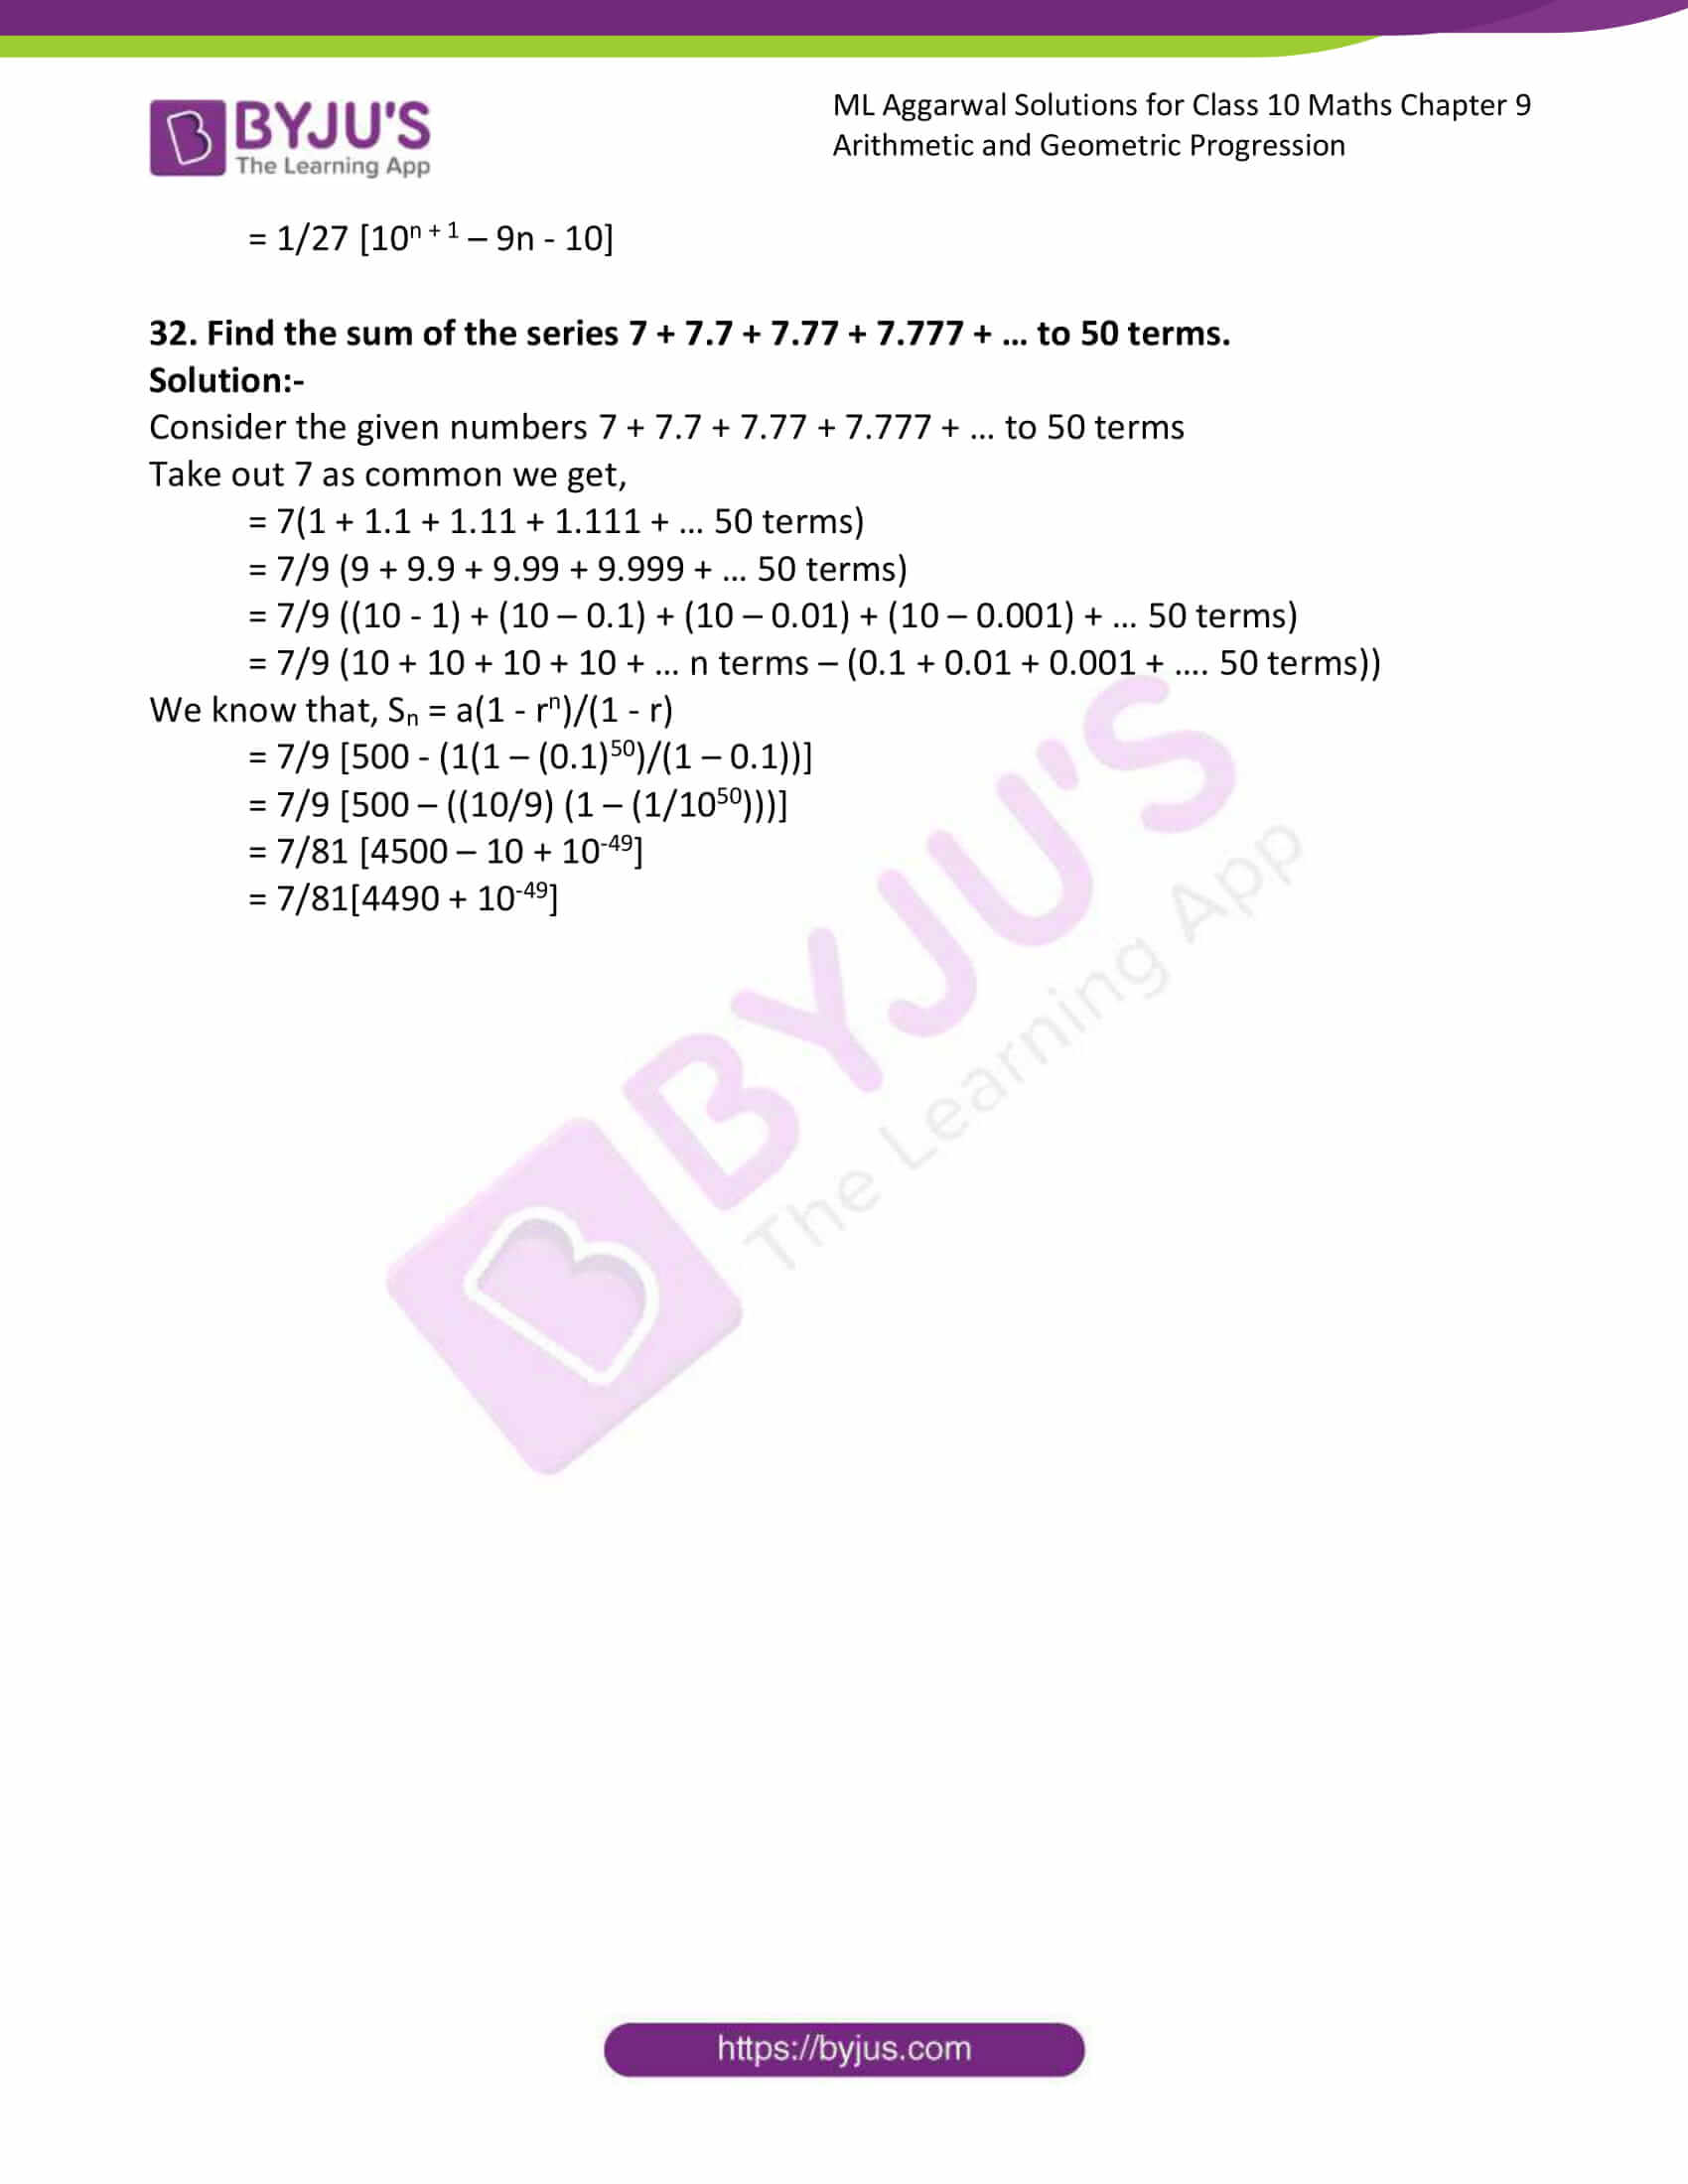 ml aggarwal solutions class 10 maths chapter 9 99